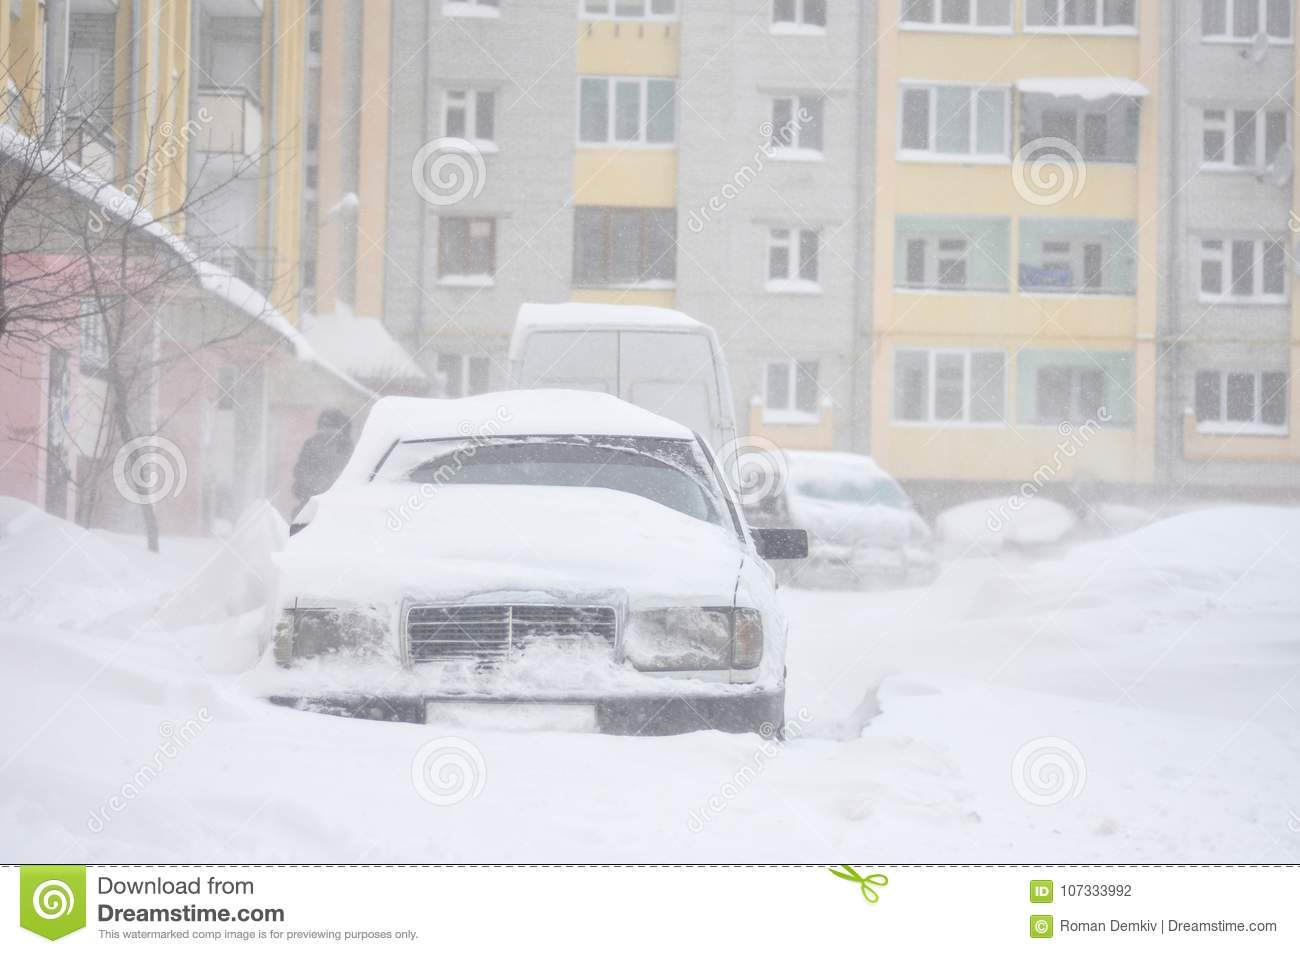 Cars blocked by snow, snow-paralysis of traffic, snow covered street, blizzard, front view, winter weather, work for utility compa